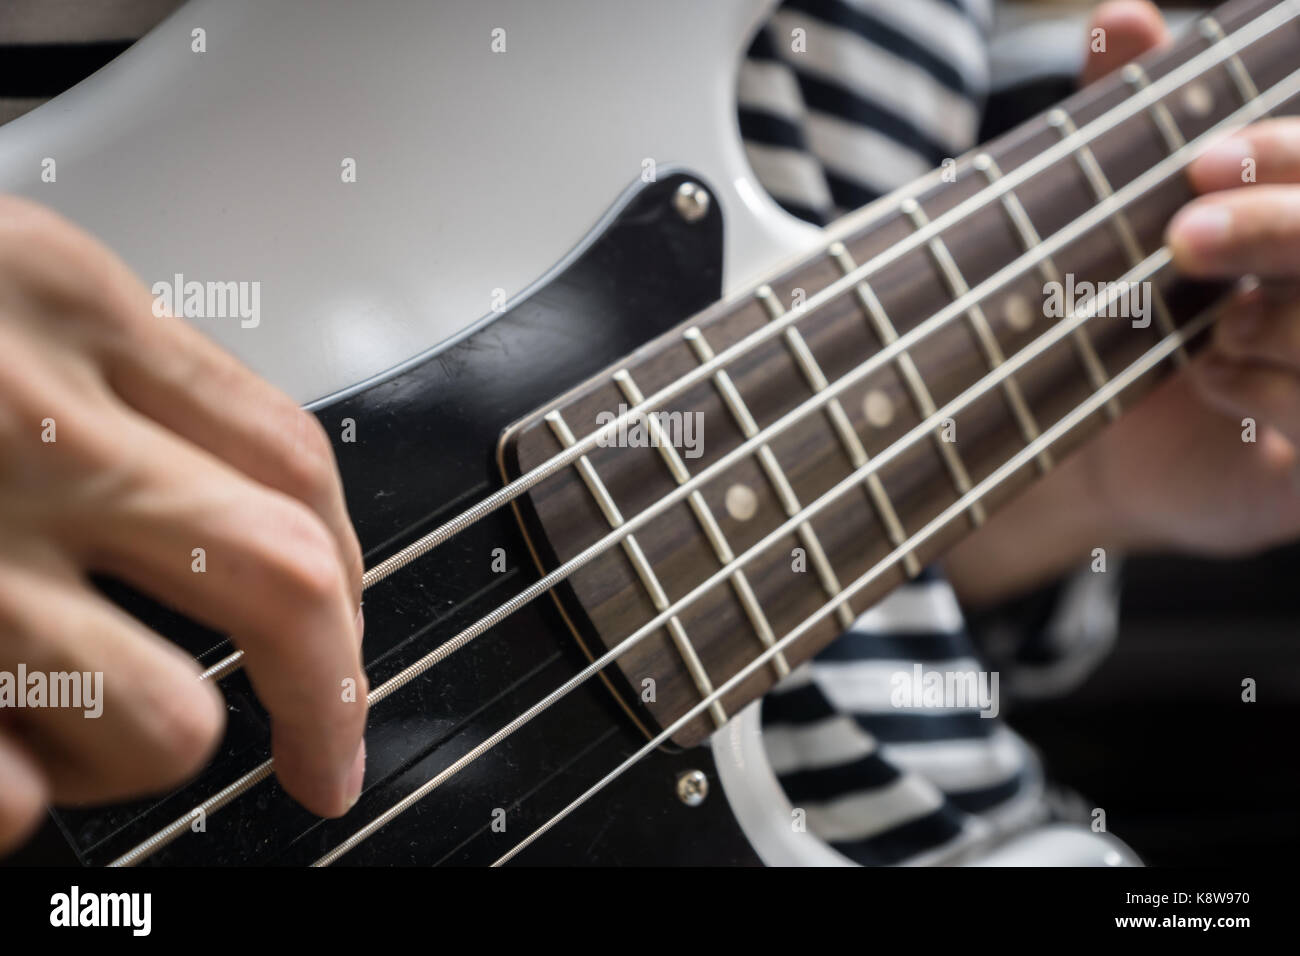 bass guitar finger style closeup - musical instruments - concept musical composition and creativity - Stock Image